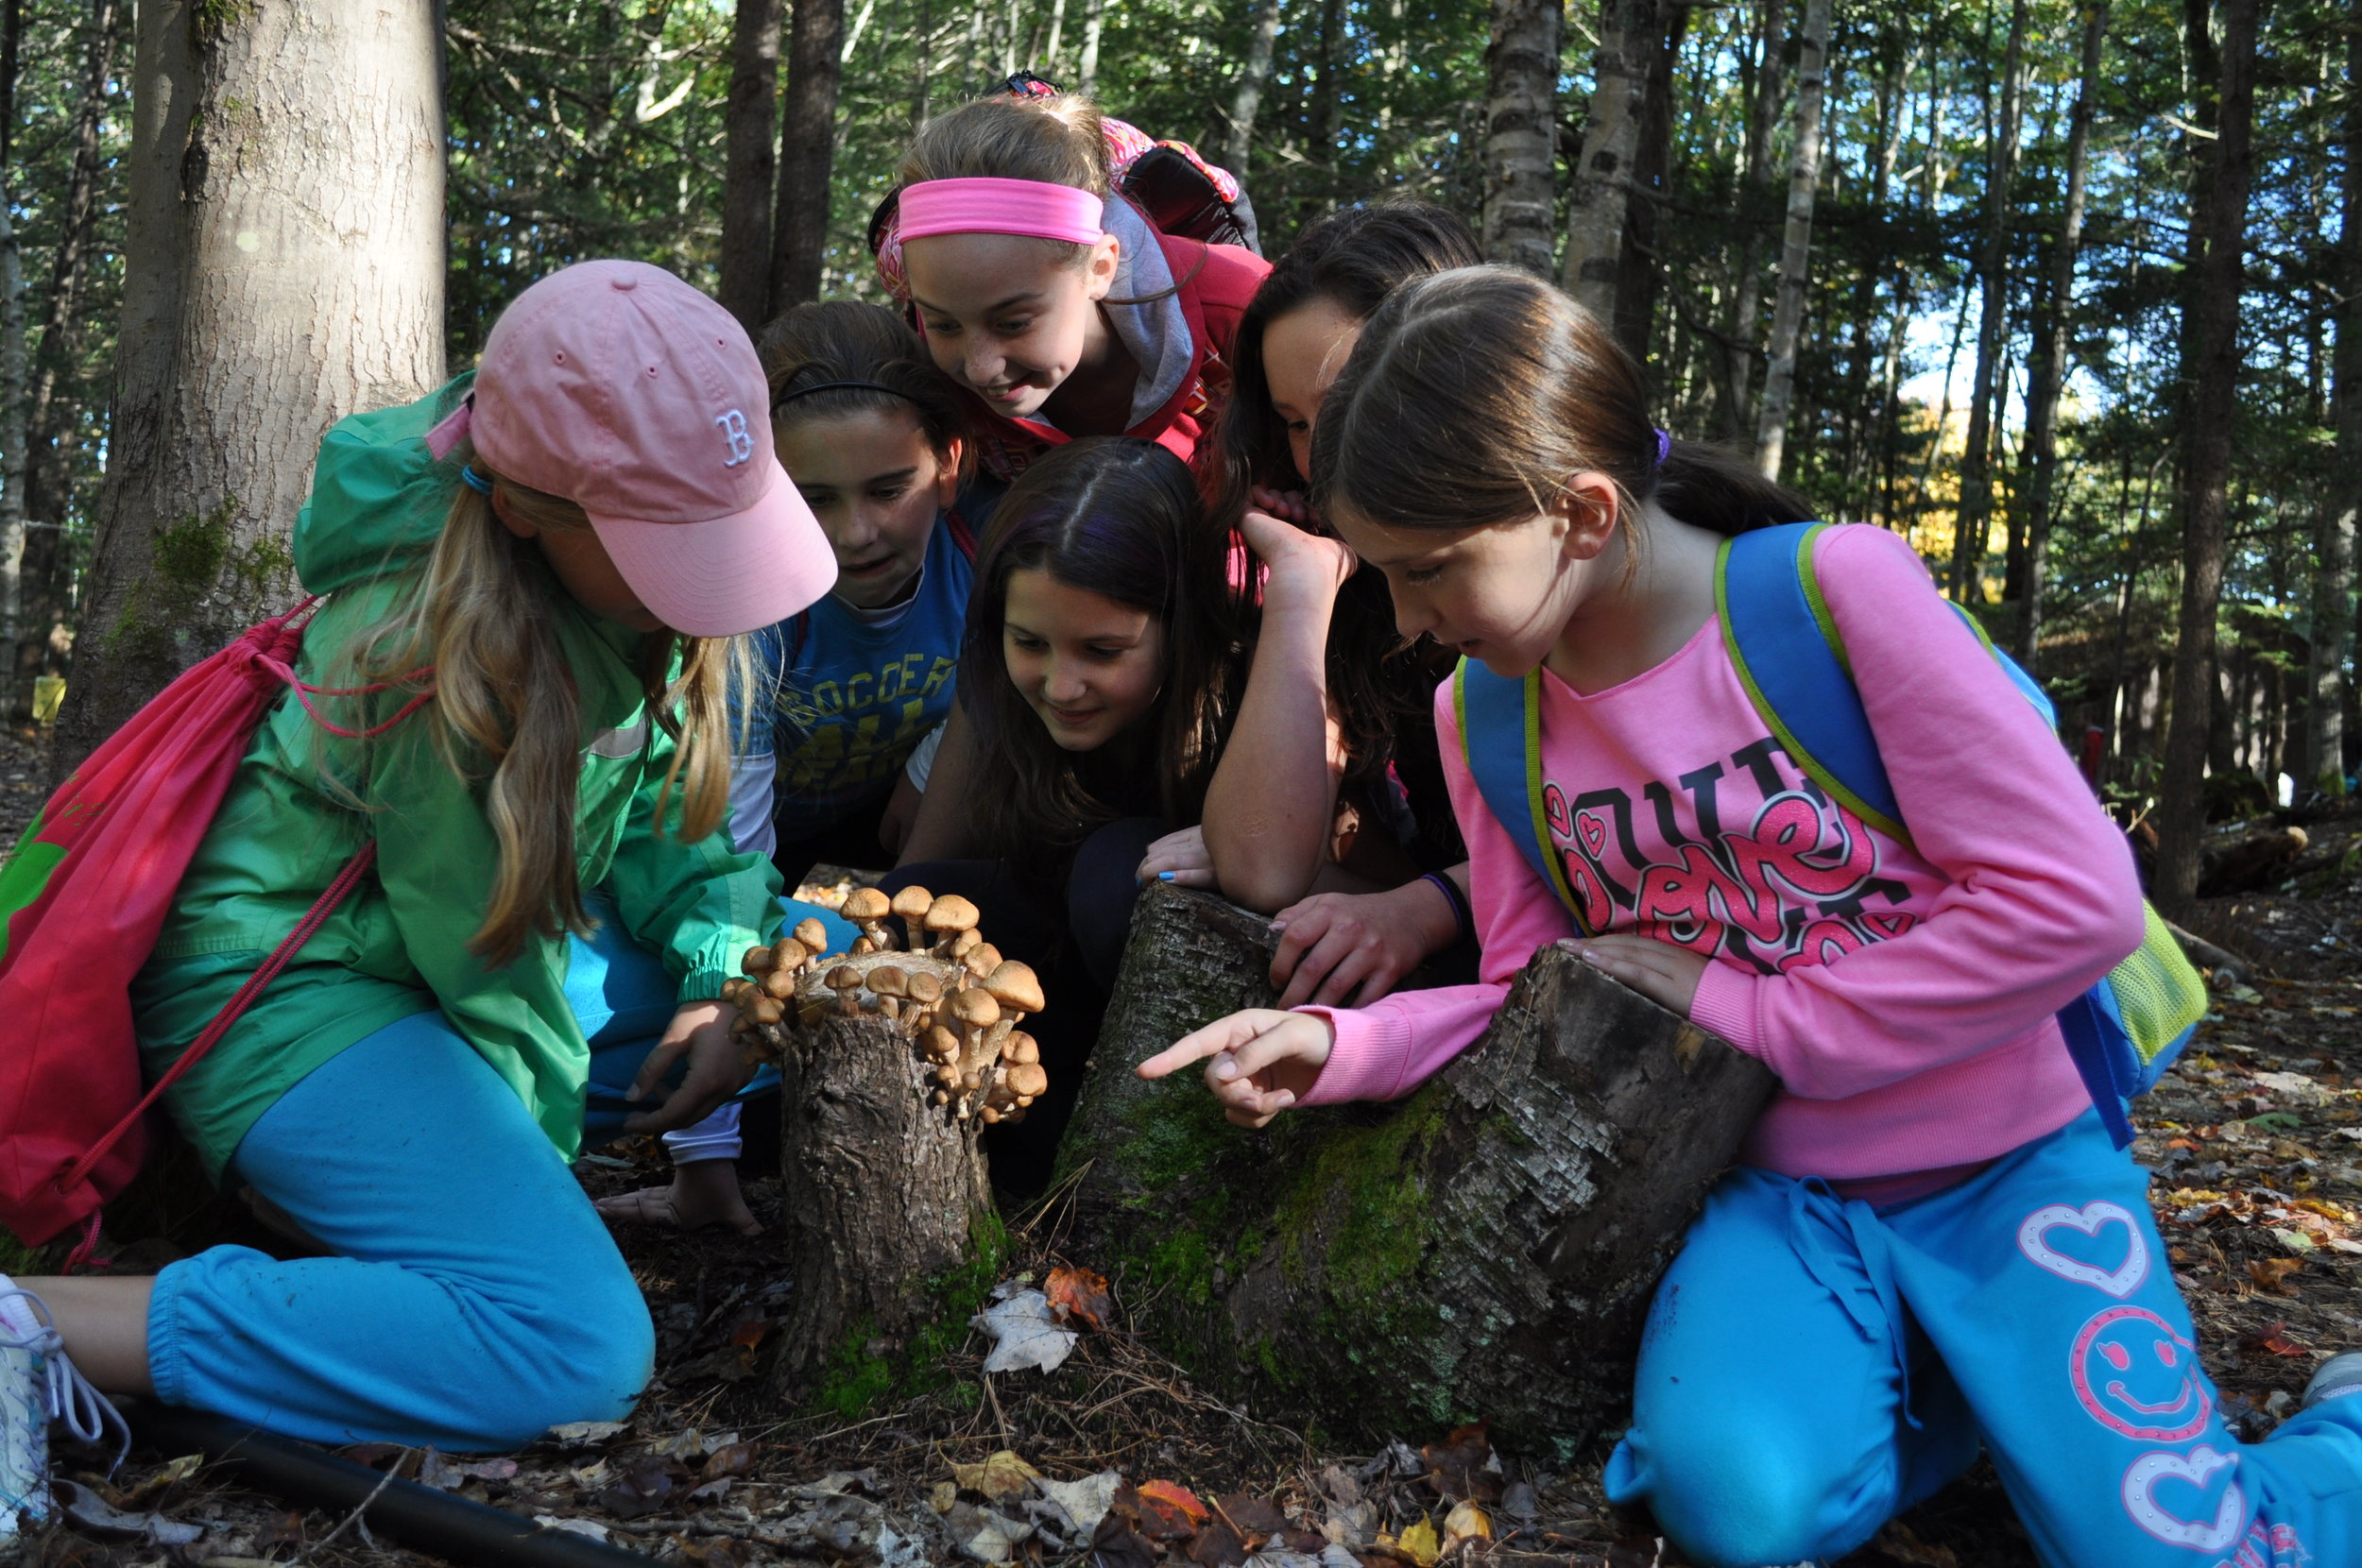 At the Ecology School students are encouraged to follow their curiosity and use the things they discover in nature as tools to dig deeper into science and environmental connections. As they learn about the FBI (Fungus, Bacteria, Invertebrates) of the forest, these young ecologists look a little closer at the mushrooms sprouting from a down tree's trunk to investigate its role in the forest's life cycle.  Photo courtesy of the Ecology School.